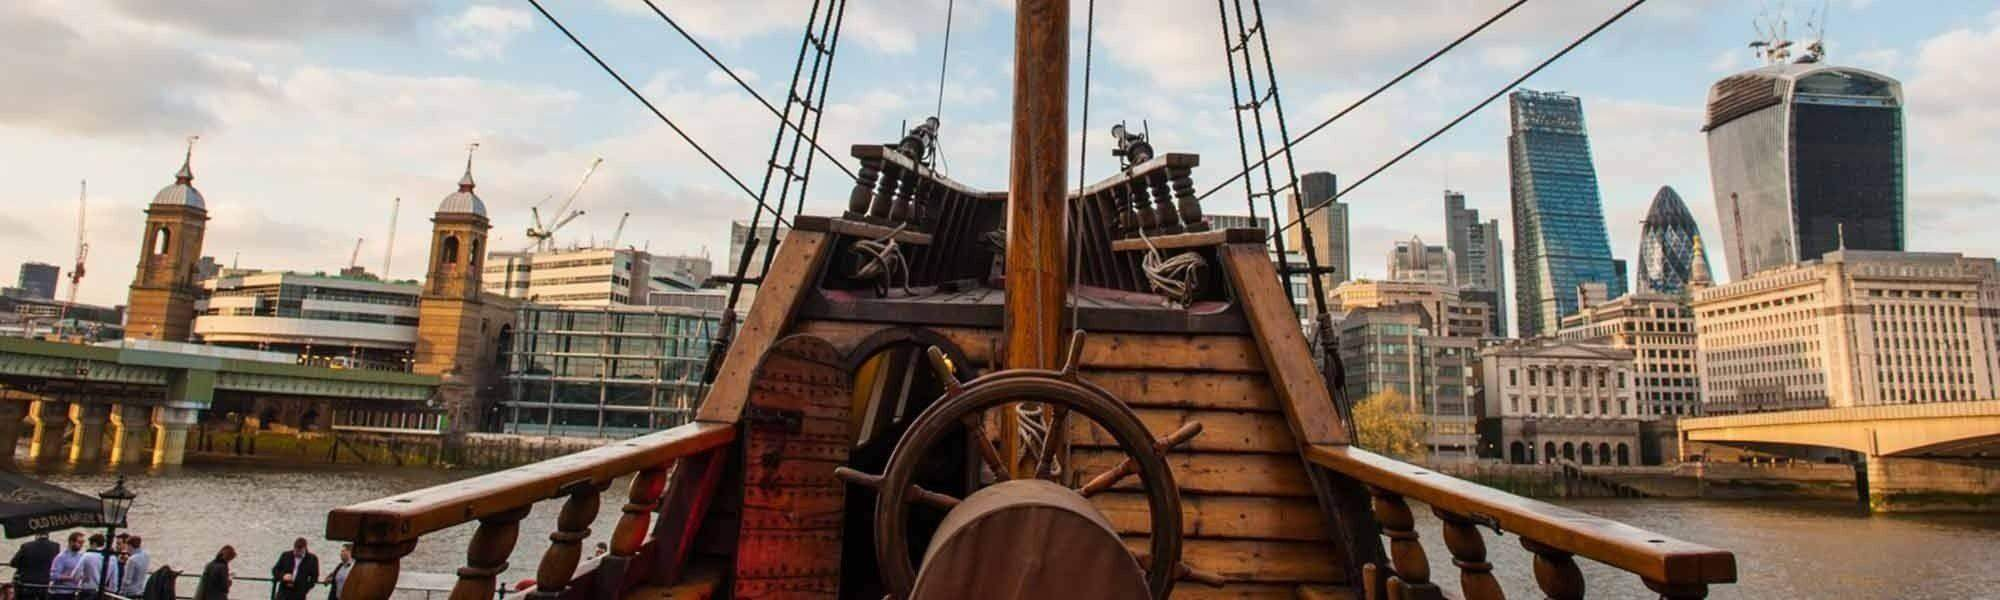 Tickets & Events Hilarious Tours, Pirate Days and more aboard The Golden Hinde - Fantastic Day Out to Learn and Have Fun, up to 25% off